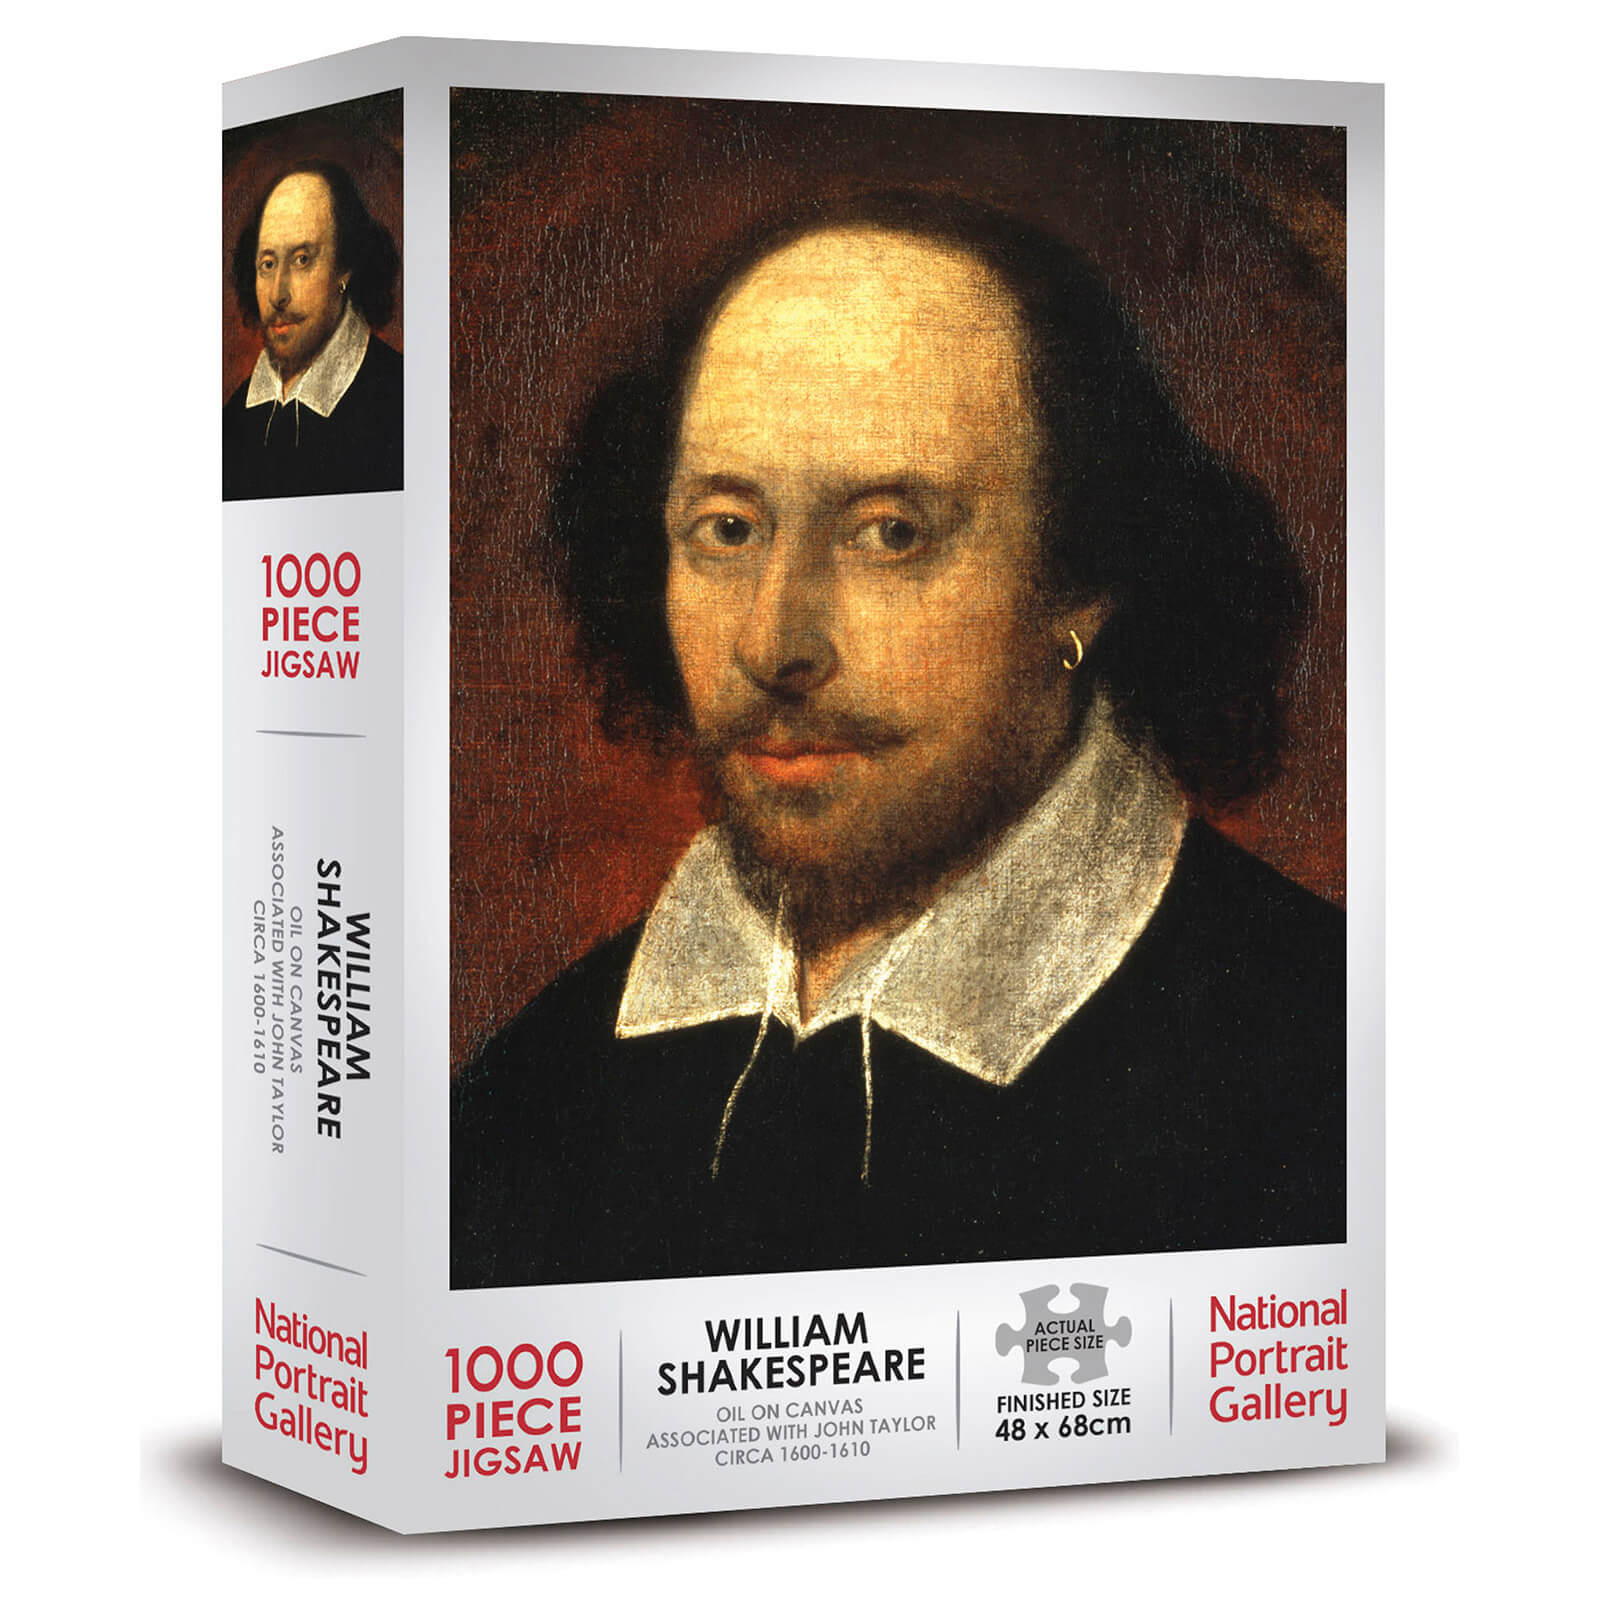 William Shakespeare 1000 Piece Jigsaw